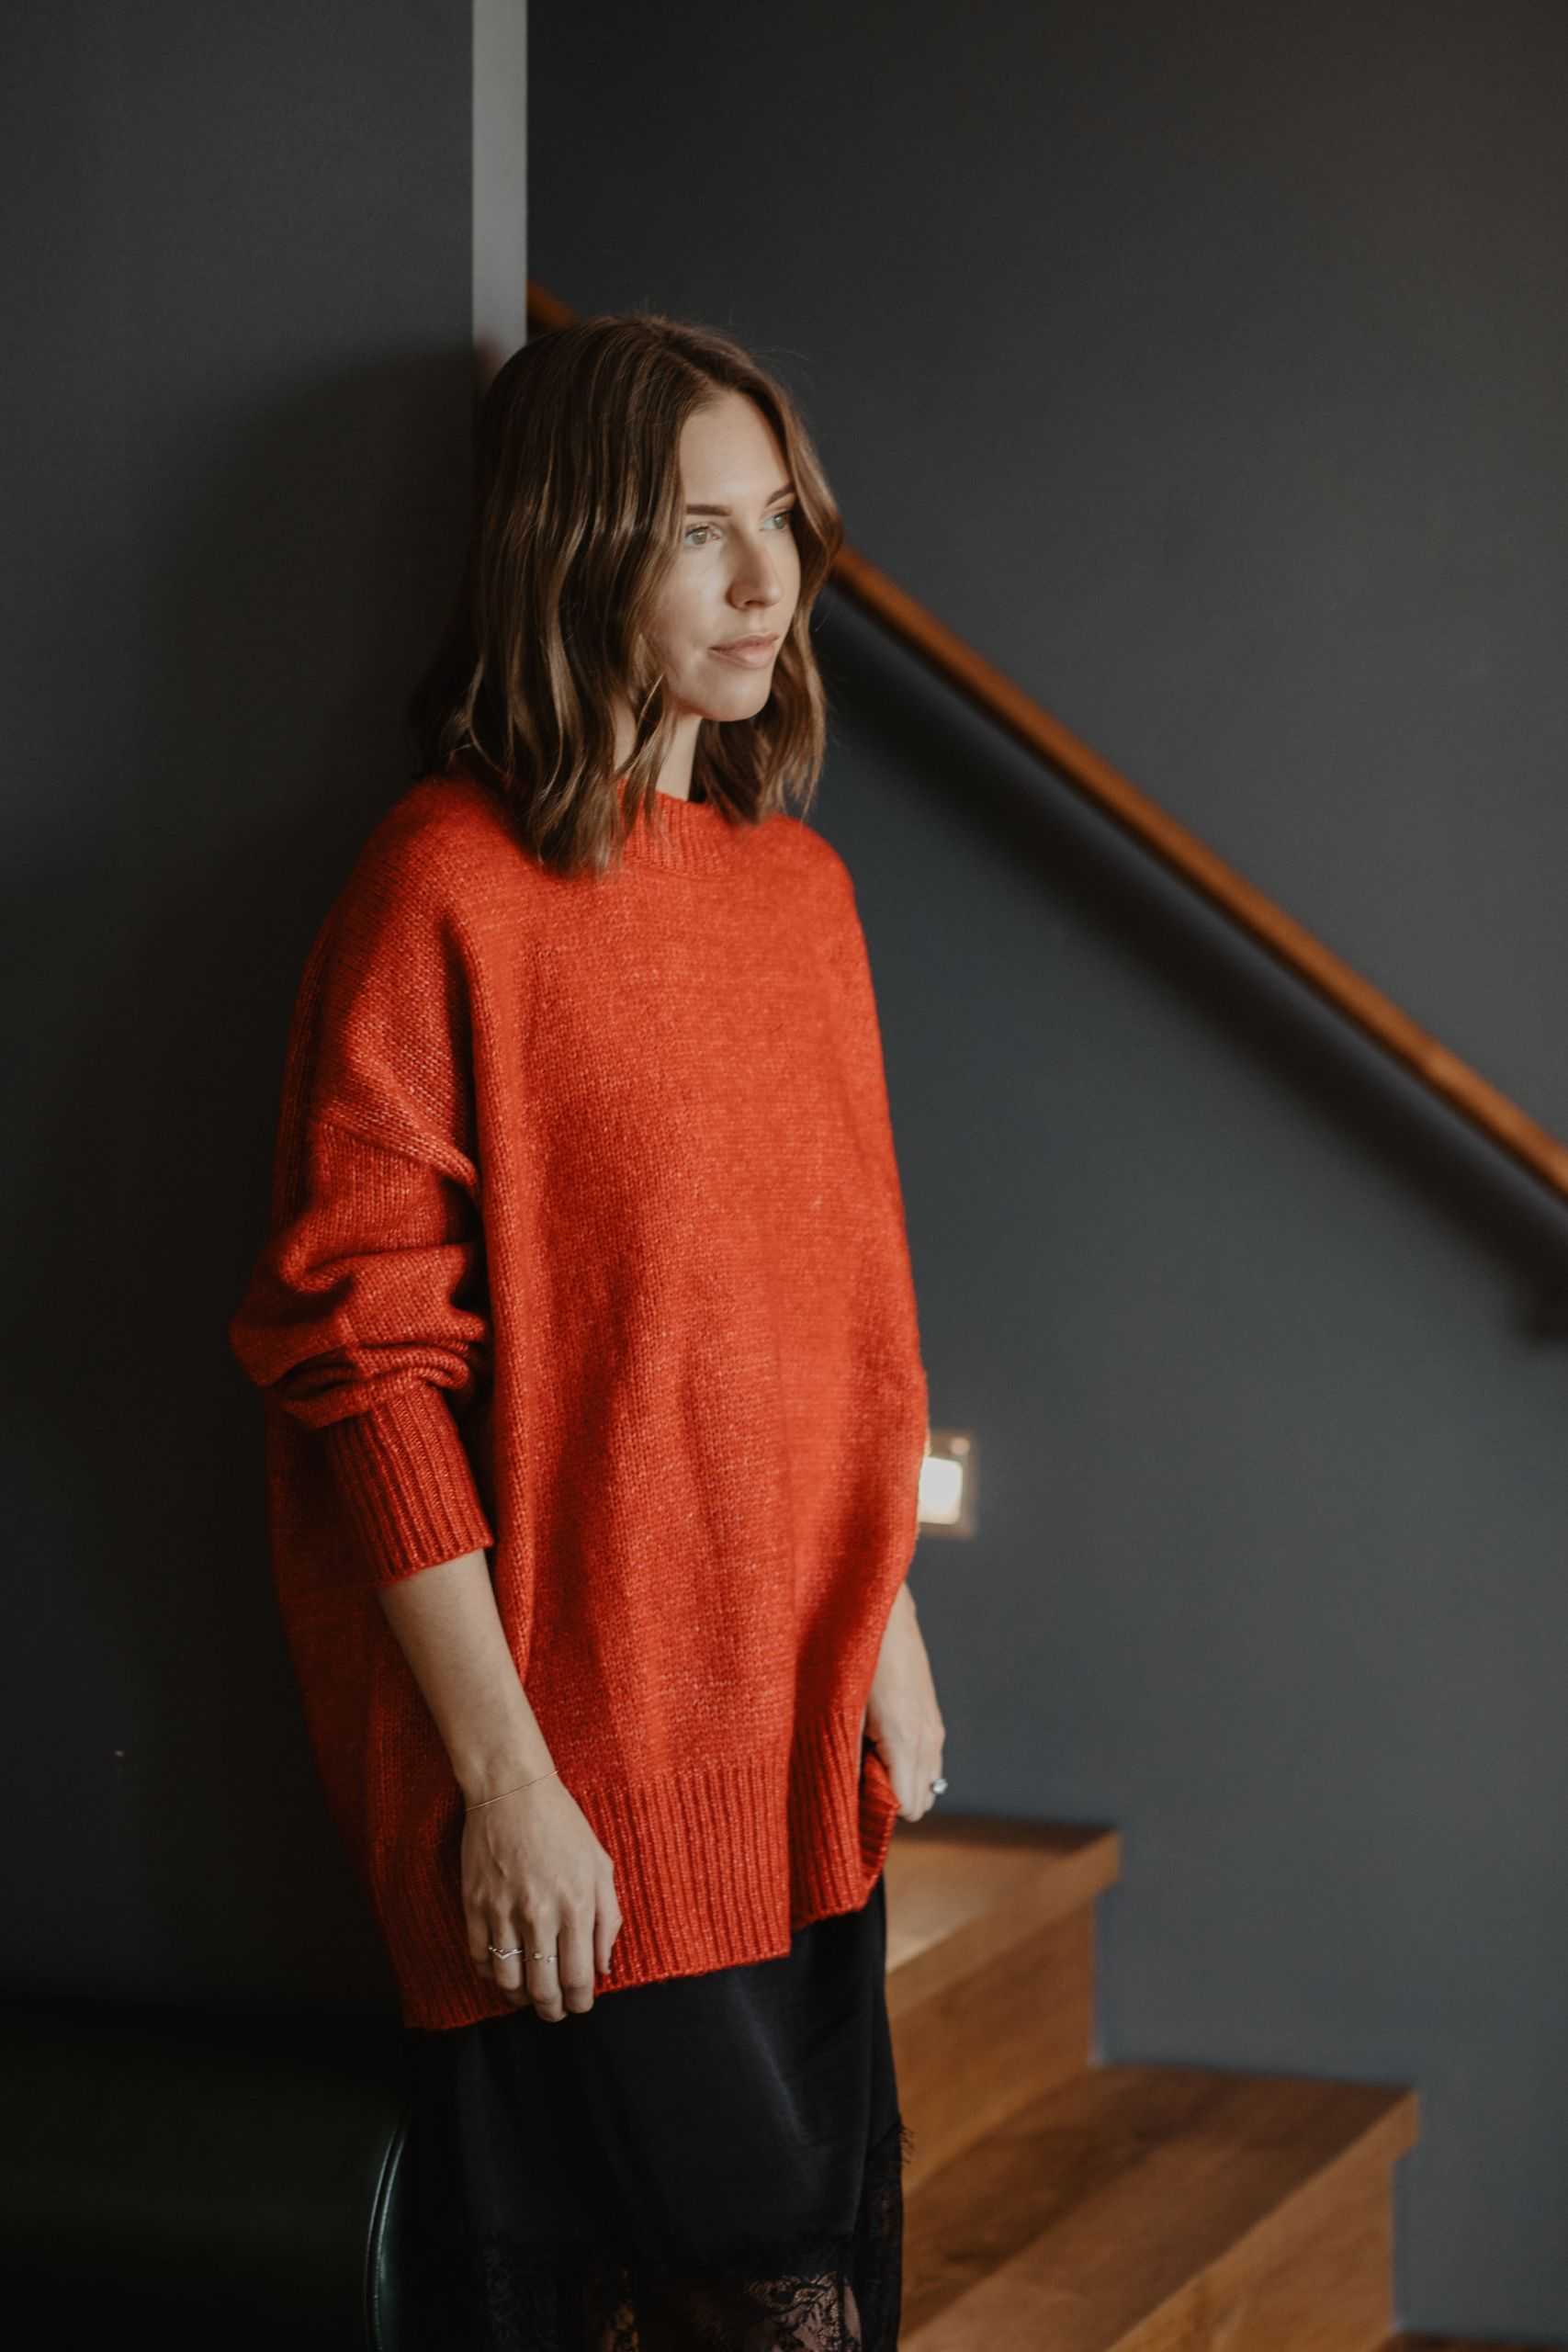 Editor's Pick: Let's get cozy | love daily dose